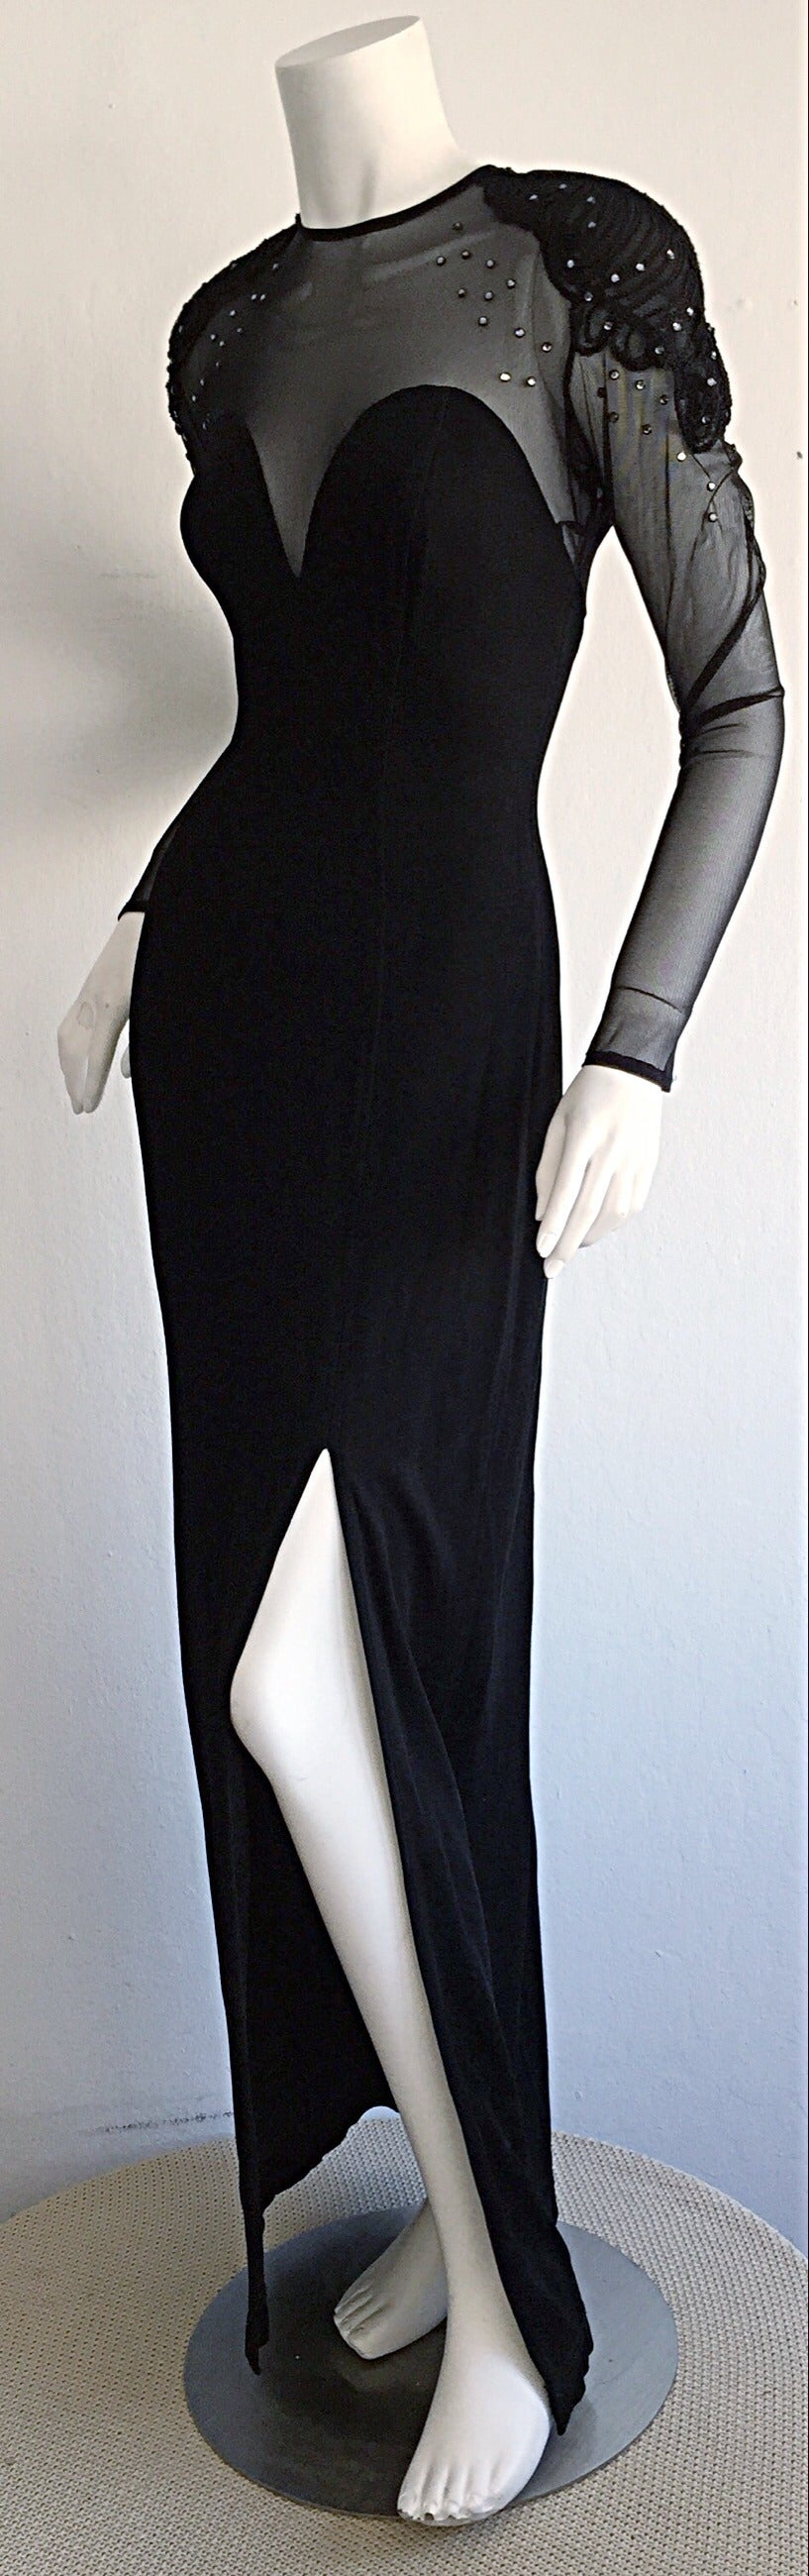 Sexy Vintage 1990s Black Cut - Out Bodycon Dress w/ Rhinestones For Sale 4